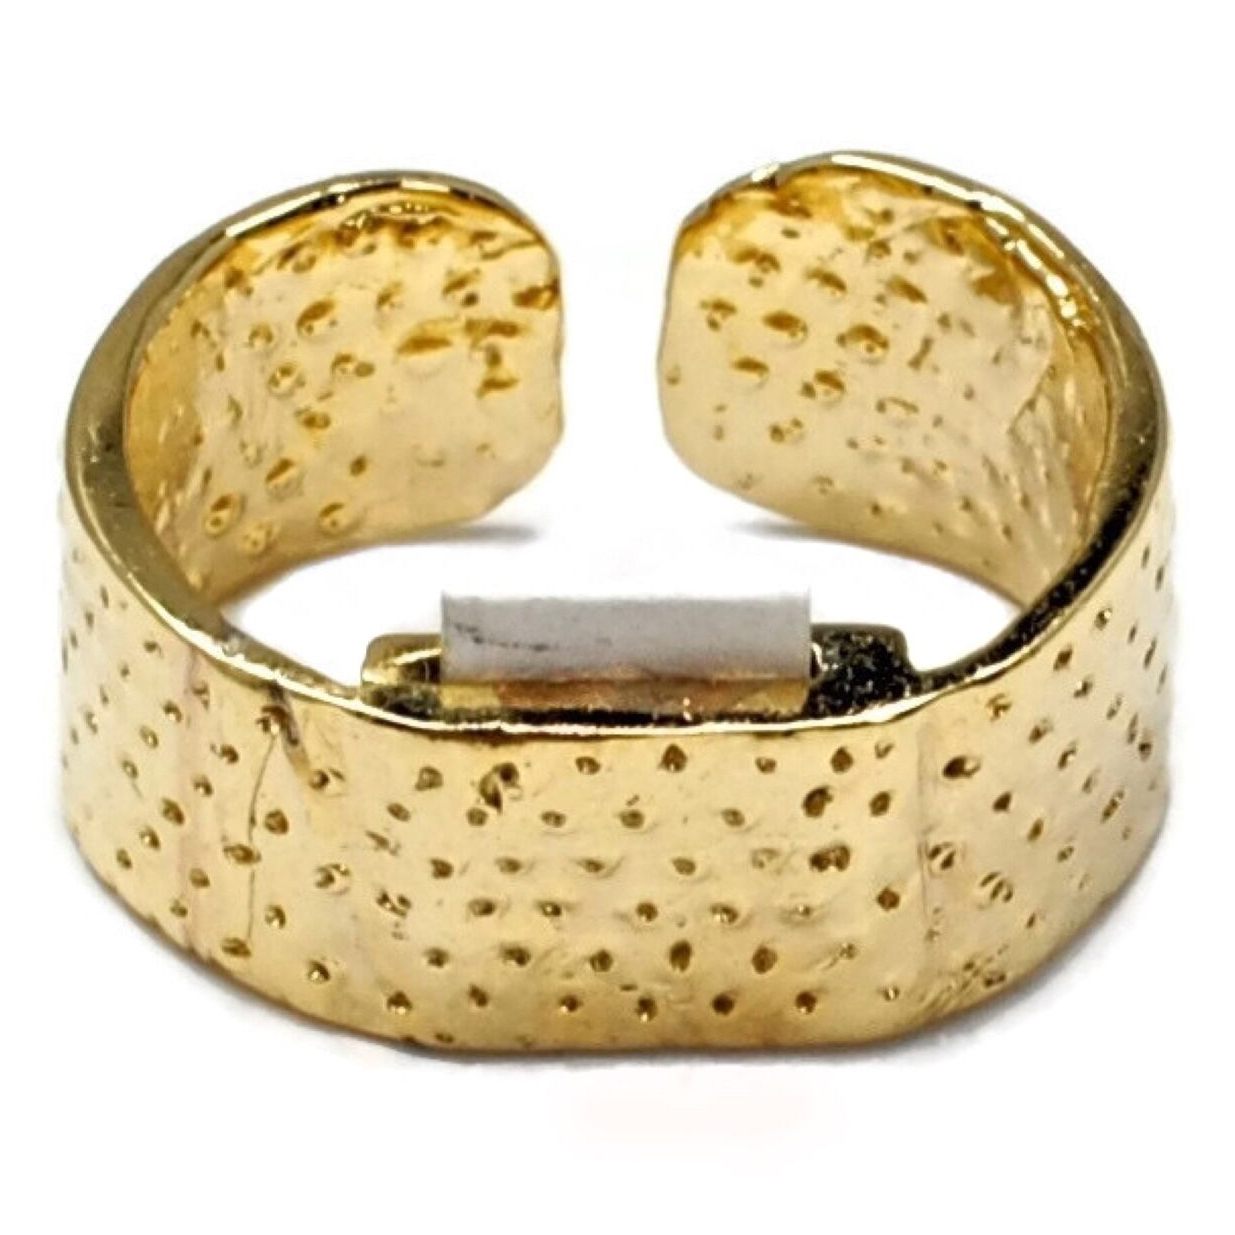 Bandaid RIng 14k Plated Brass_preview.jpeg